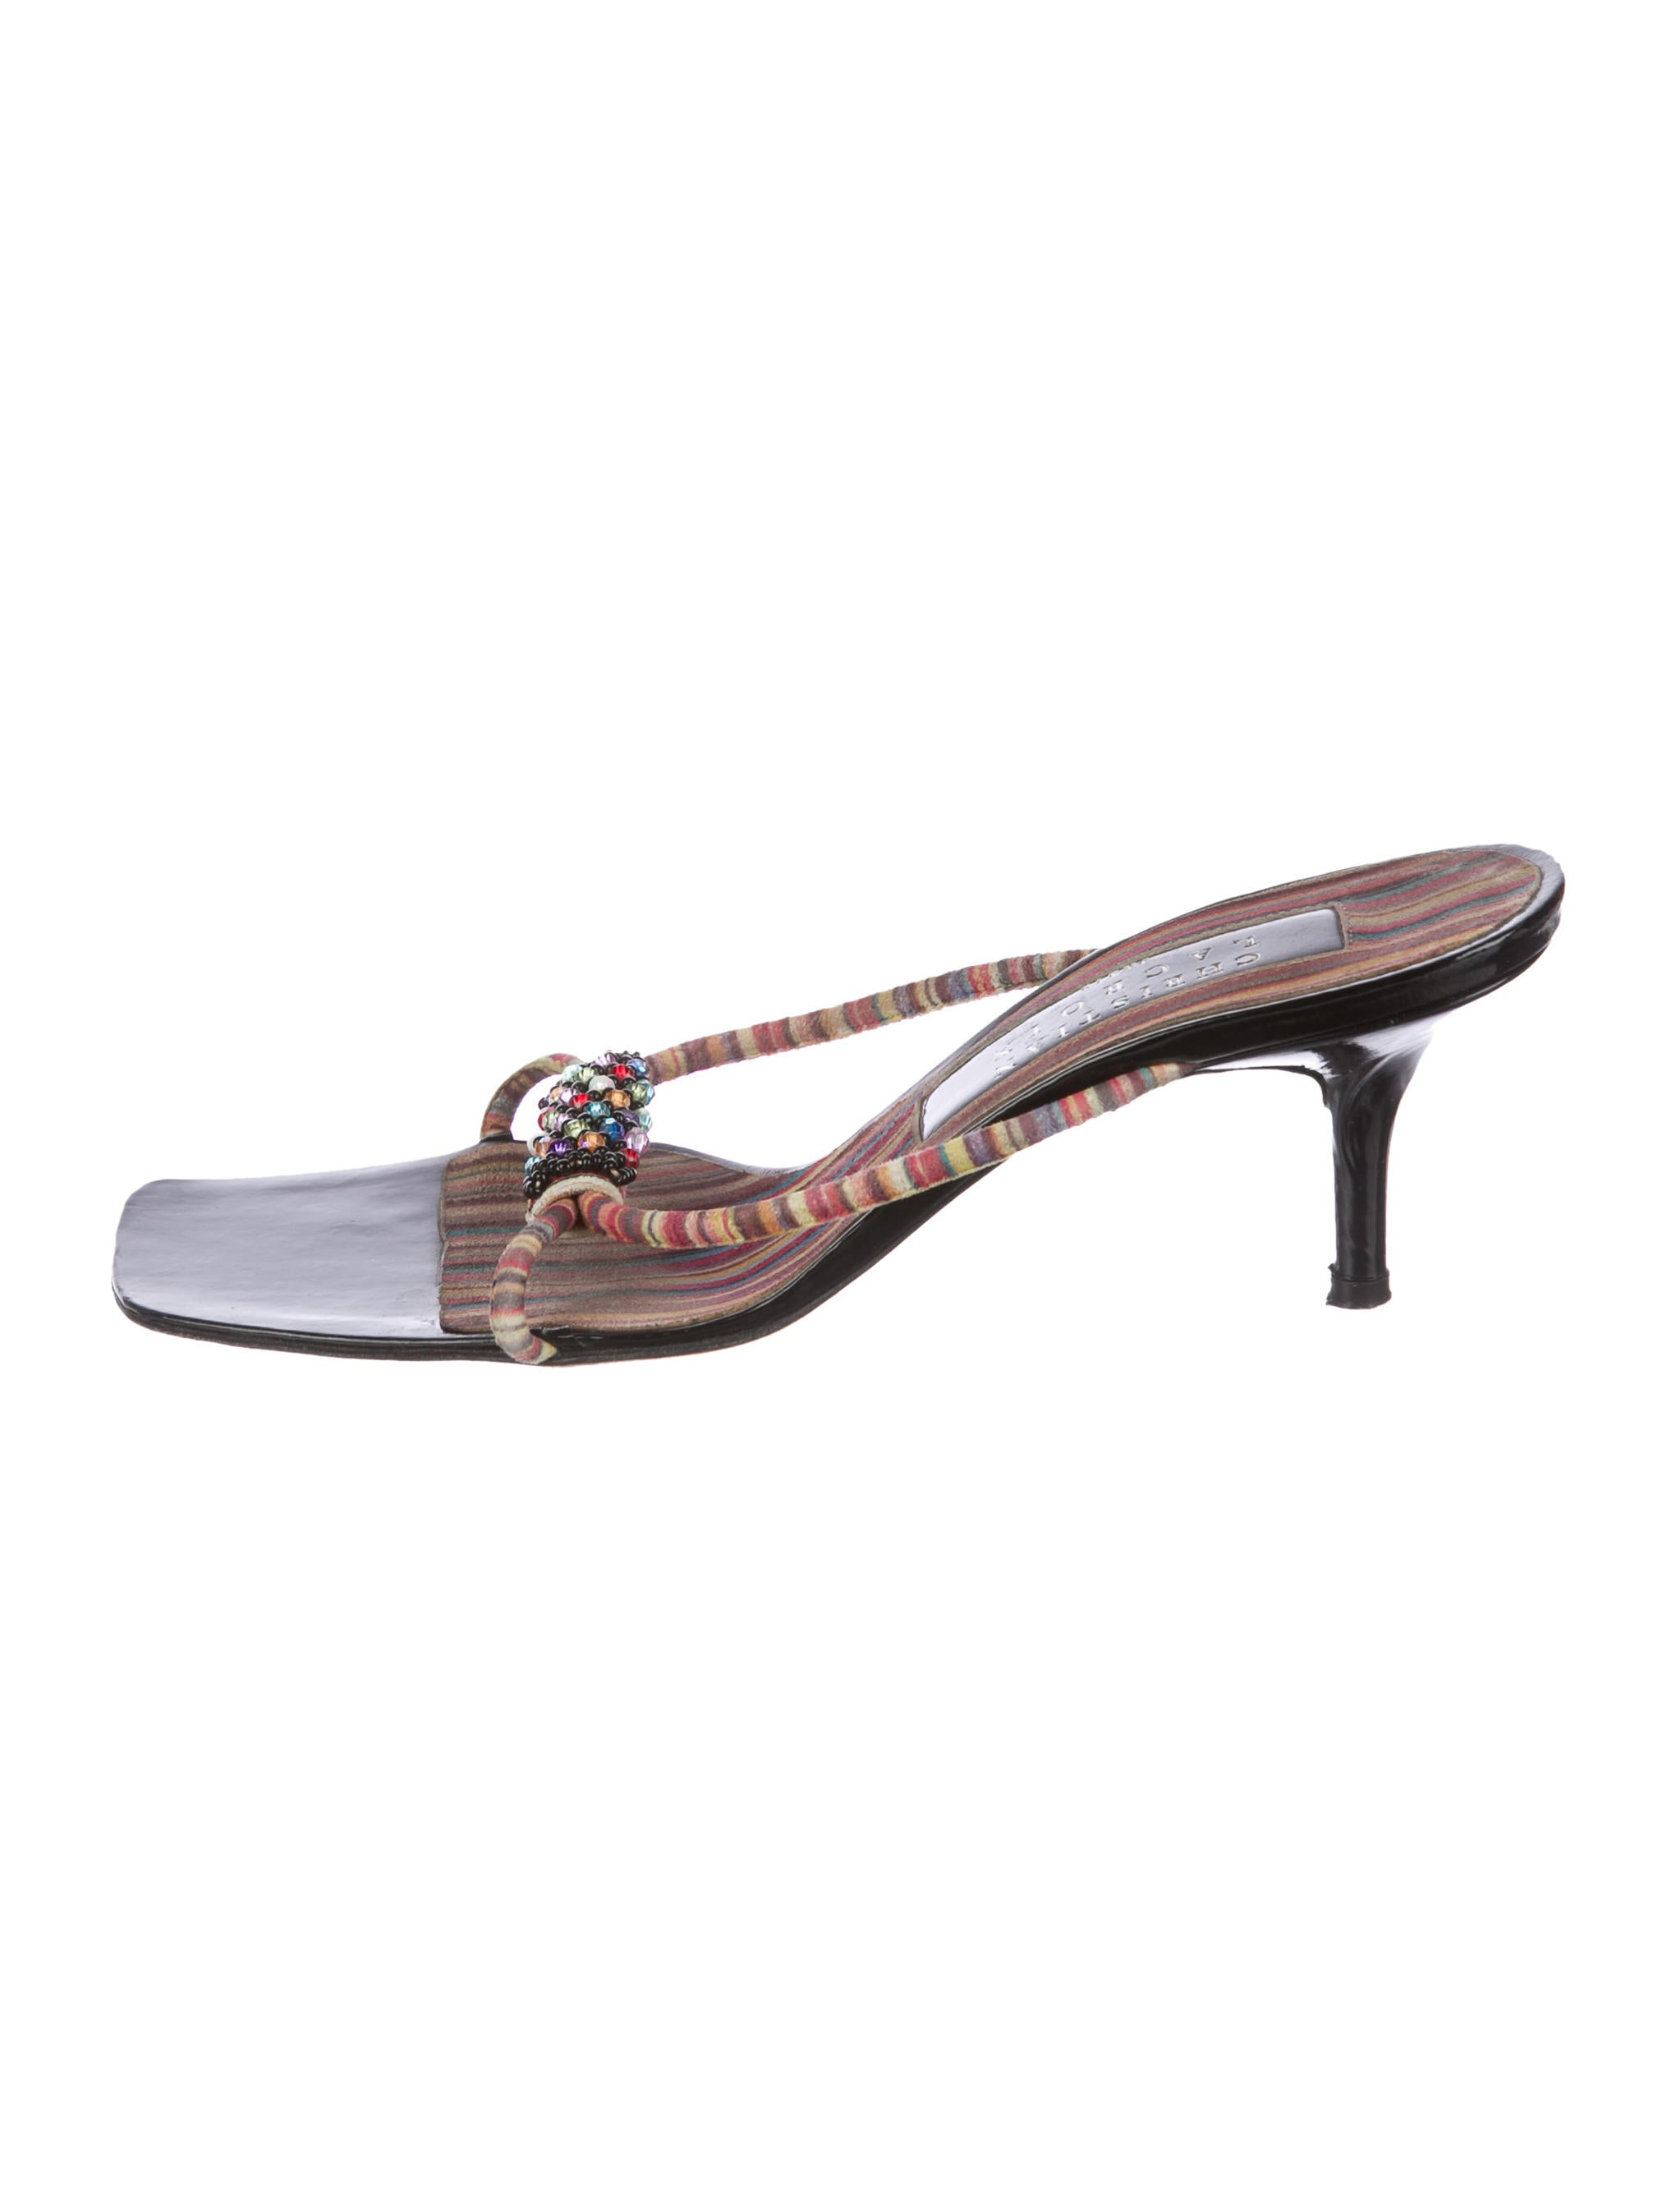 Christian Lacroix Suede Embellished Sandals sale low price buy cheap amazon buy cheap 2014 newest buy cheap visit new eaqFyhUTE